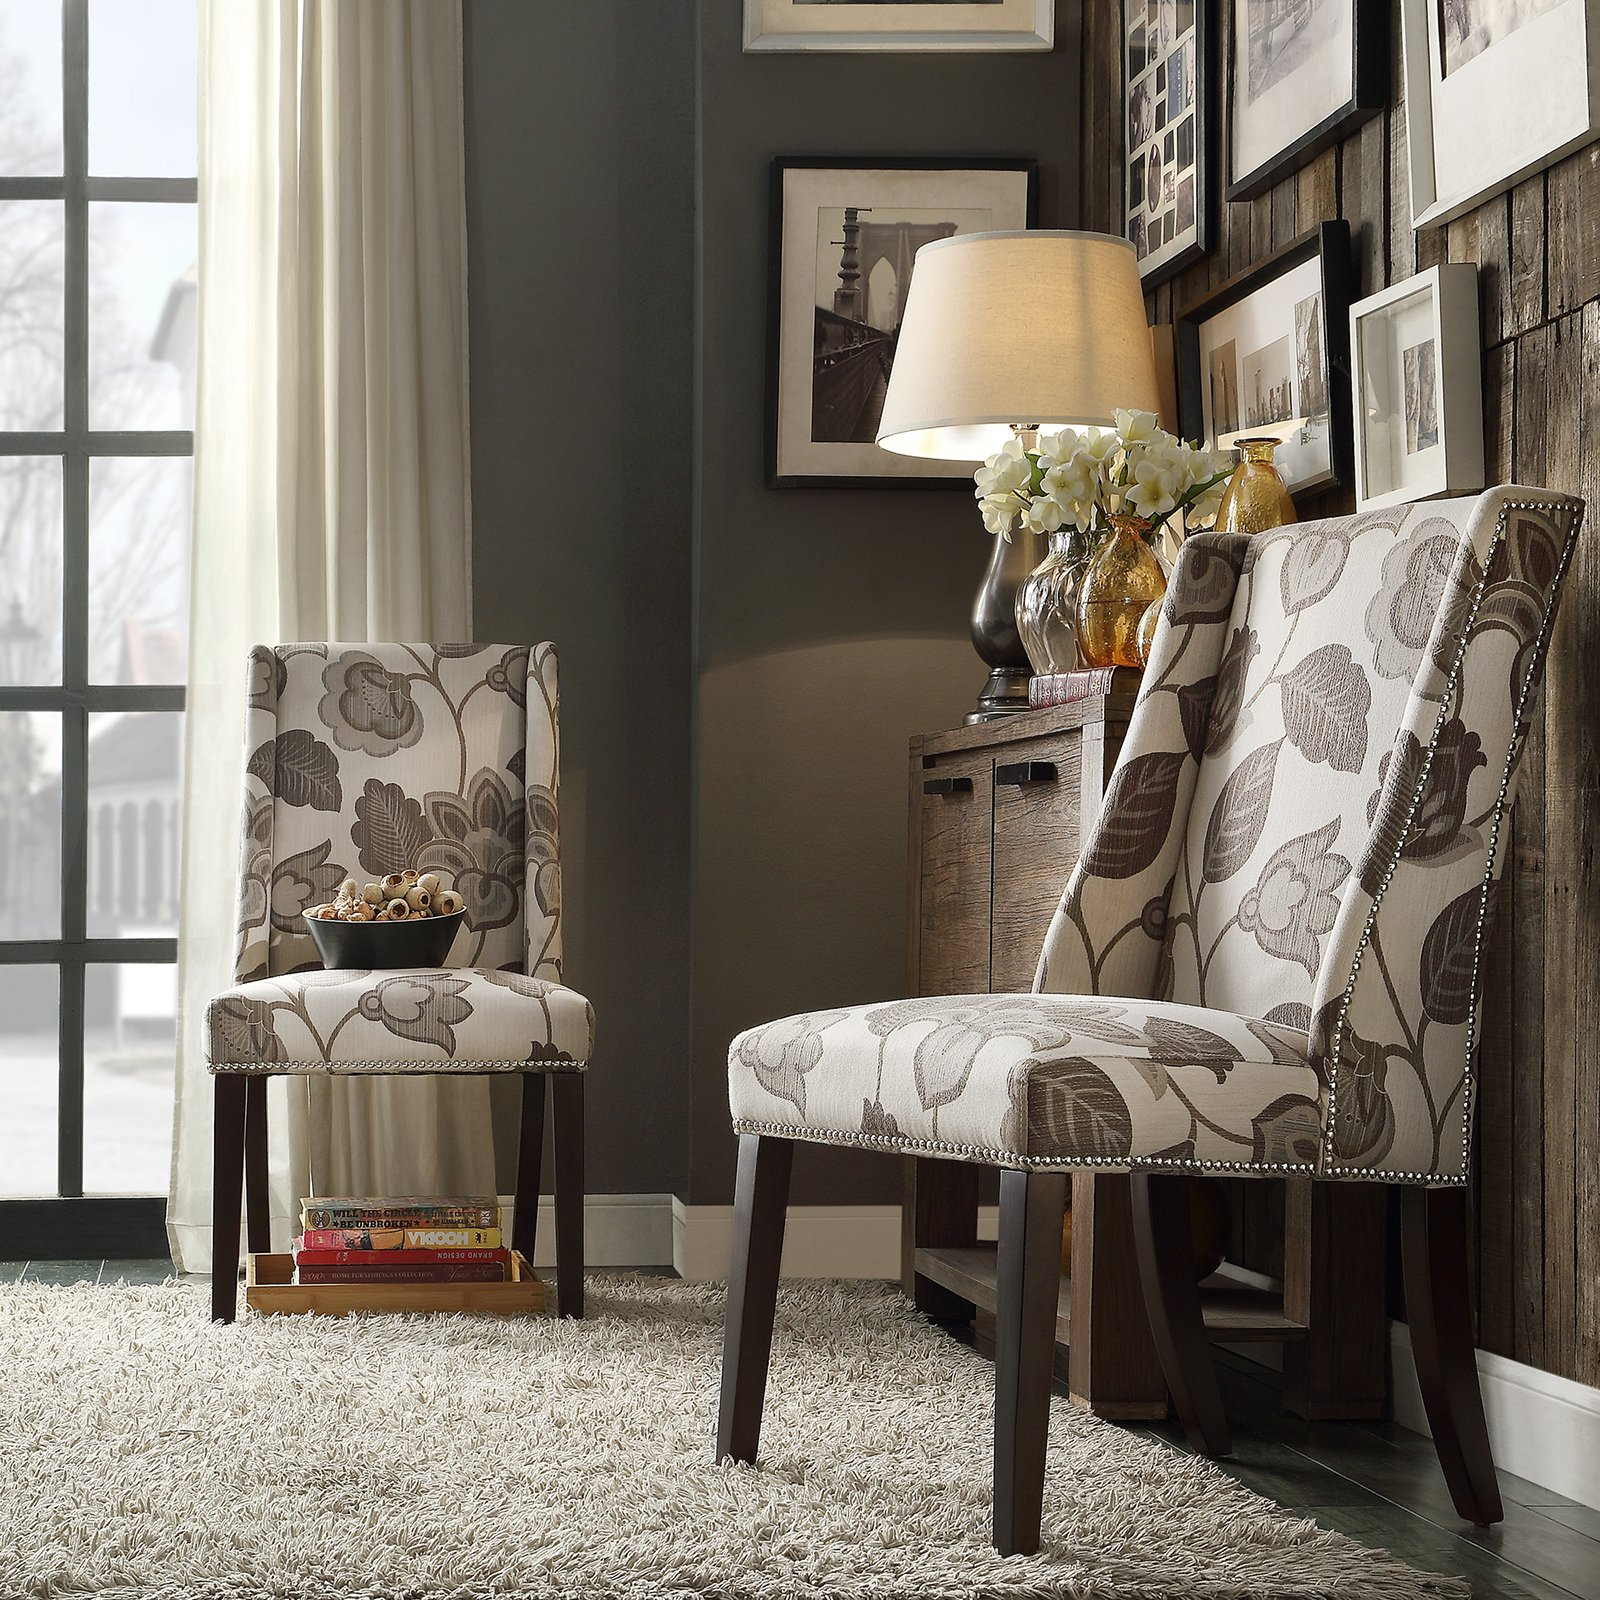 Chelsea Lane Classic Gray Flower with Leaves Print Wingback with Nailhead Accent  Chair - Set of 2 - Walmart.com